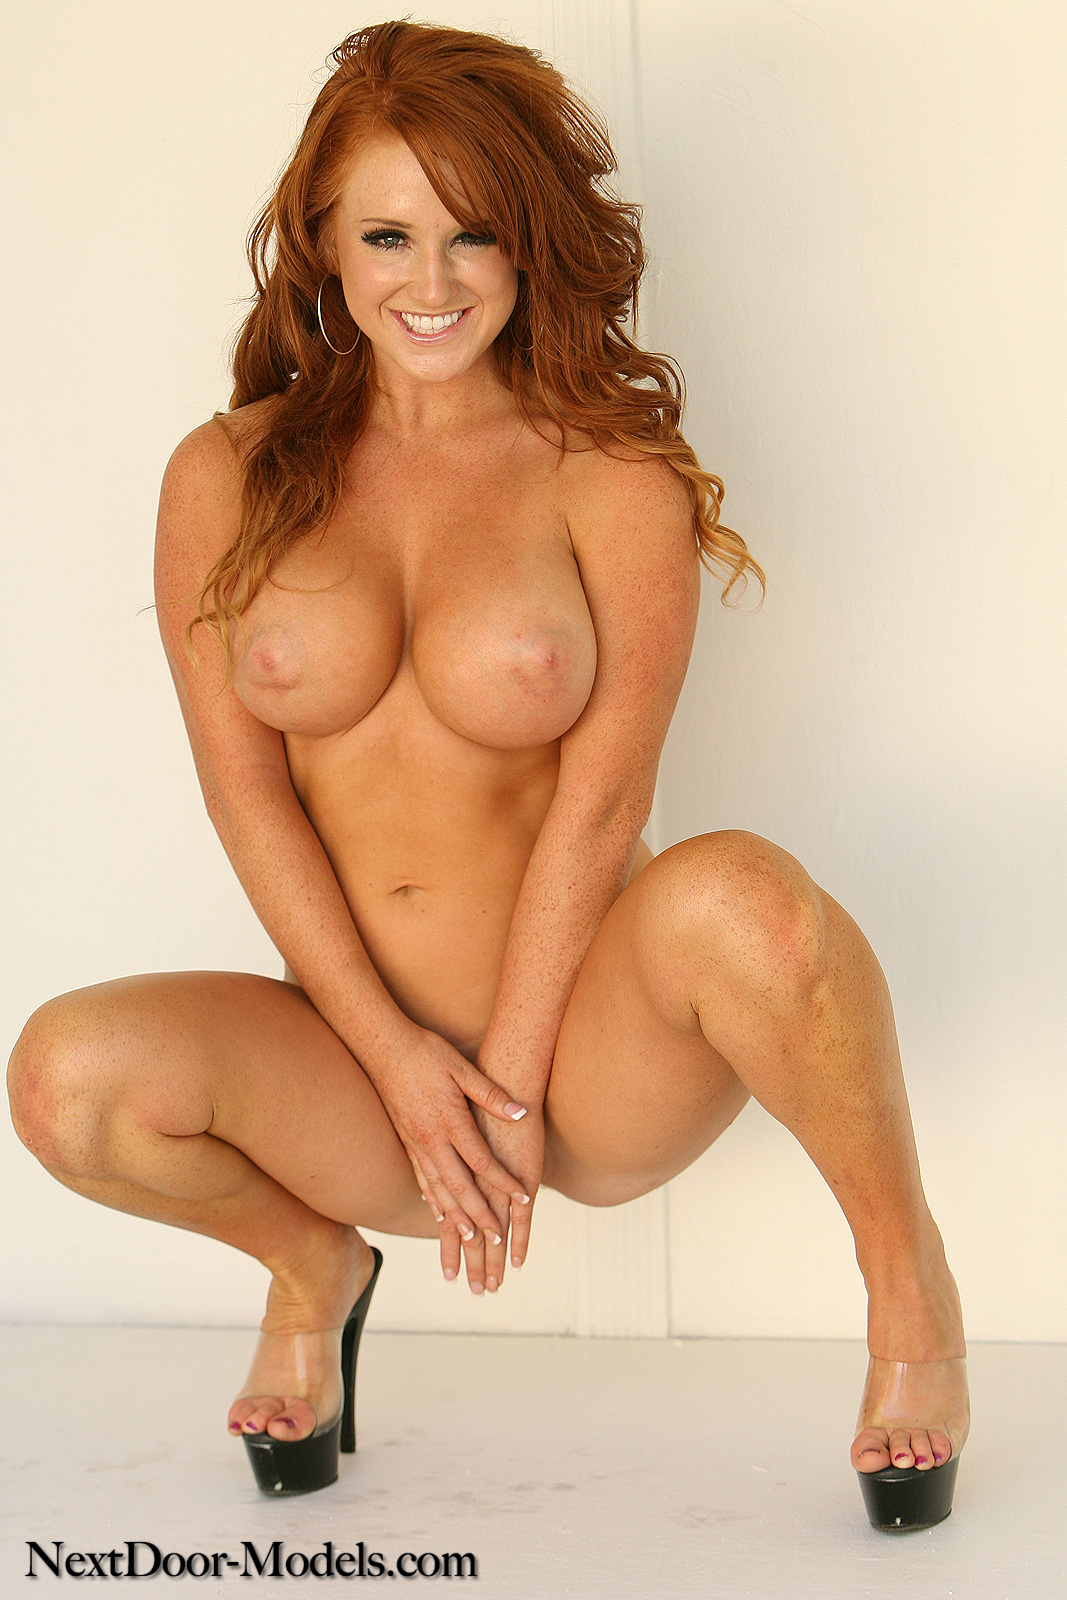 Sexiest milf female nude redhead sexy fog wish was